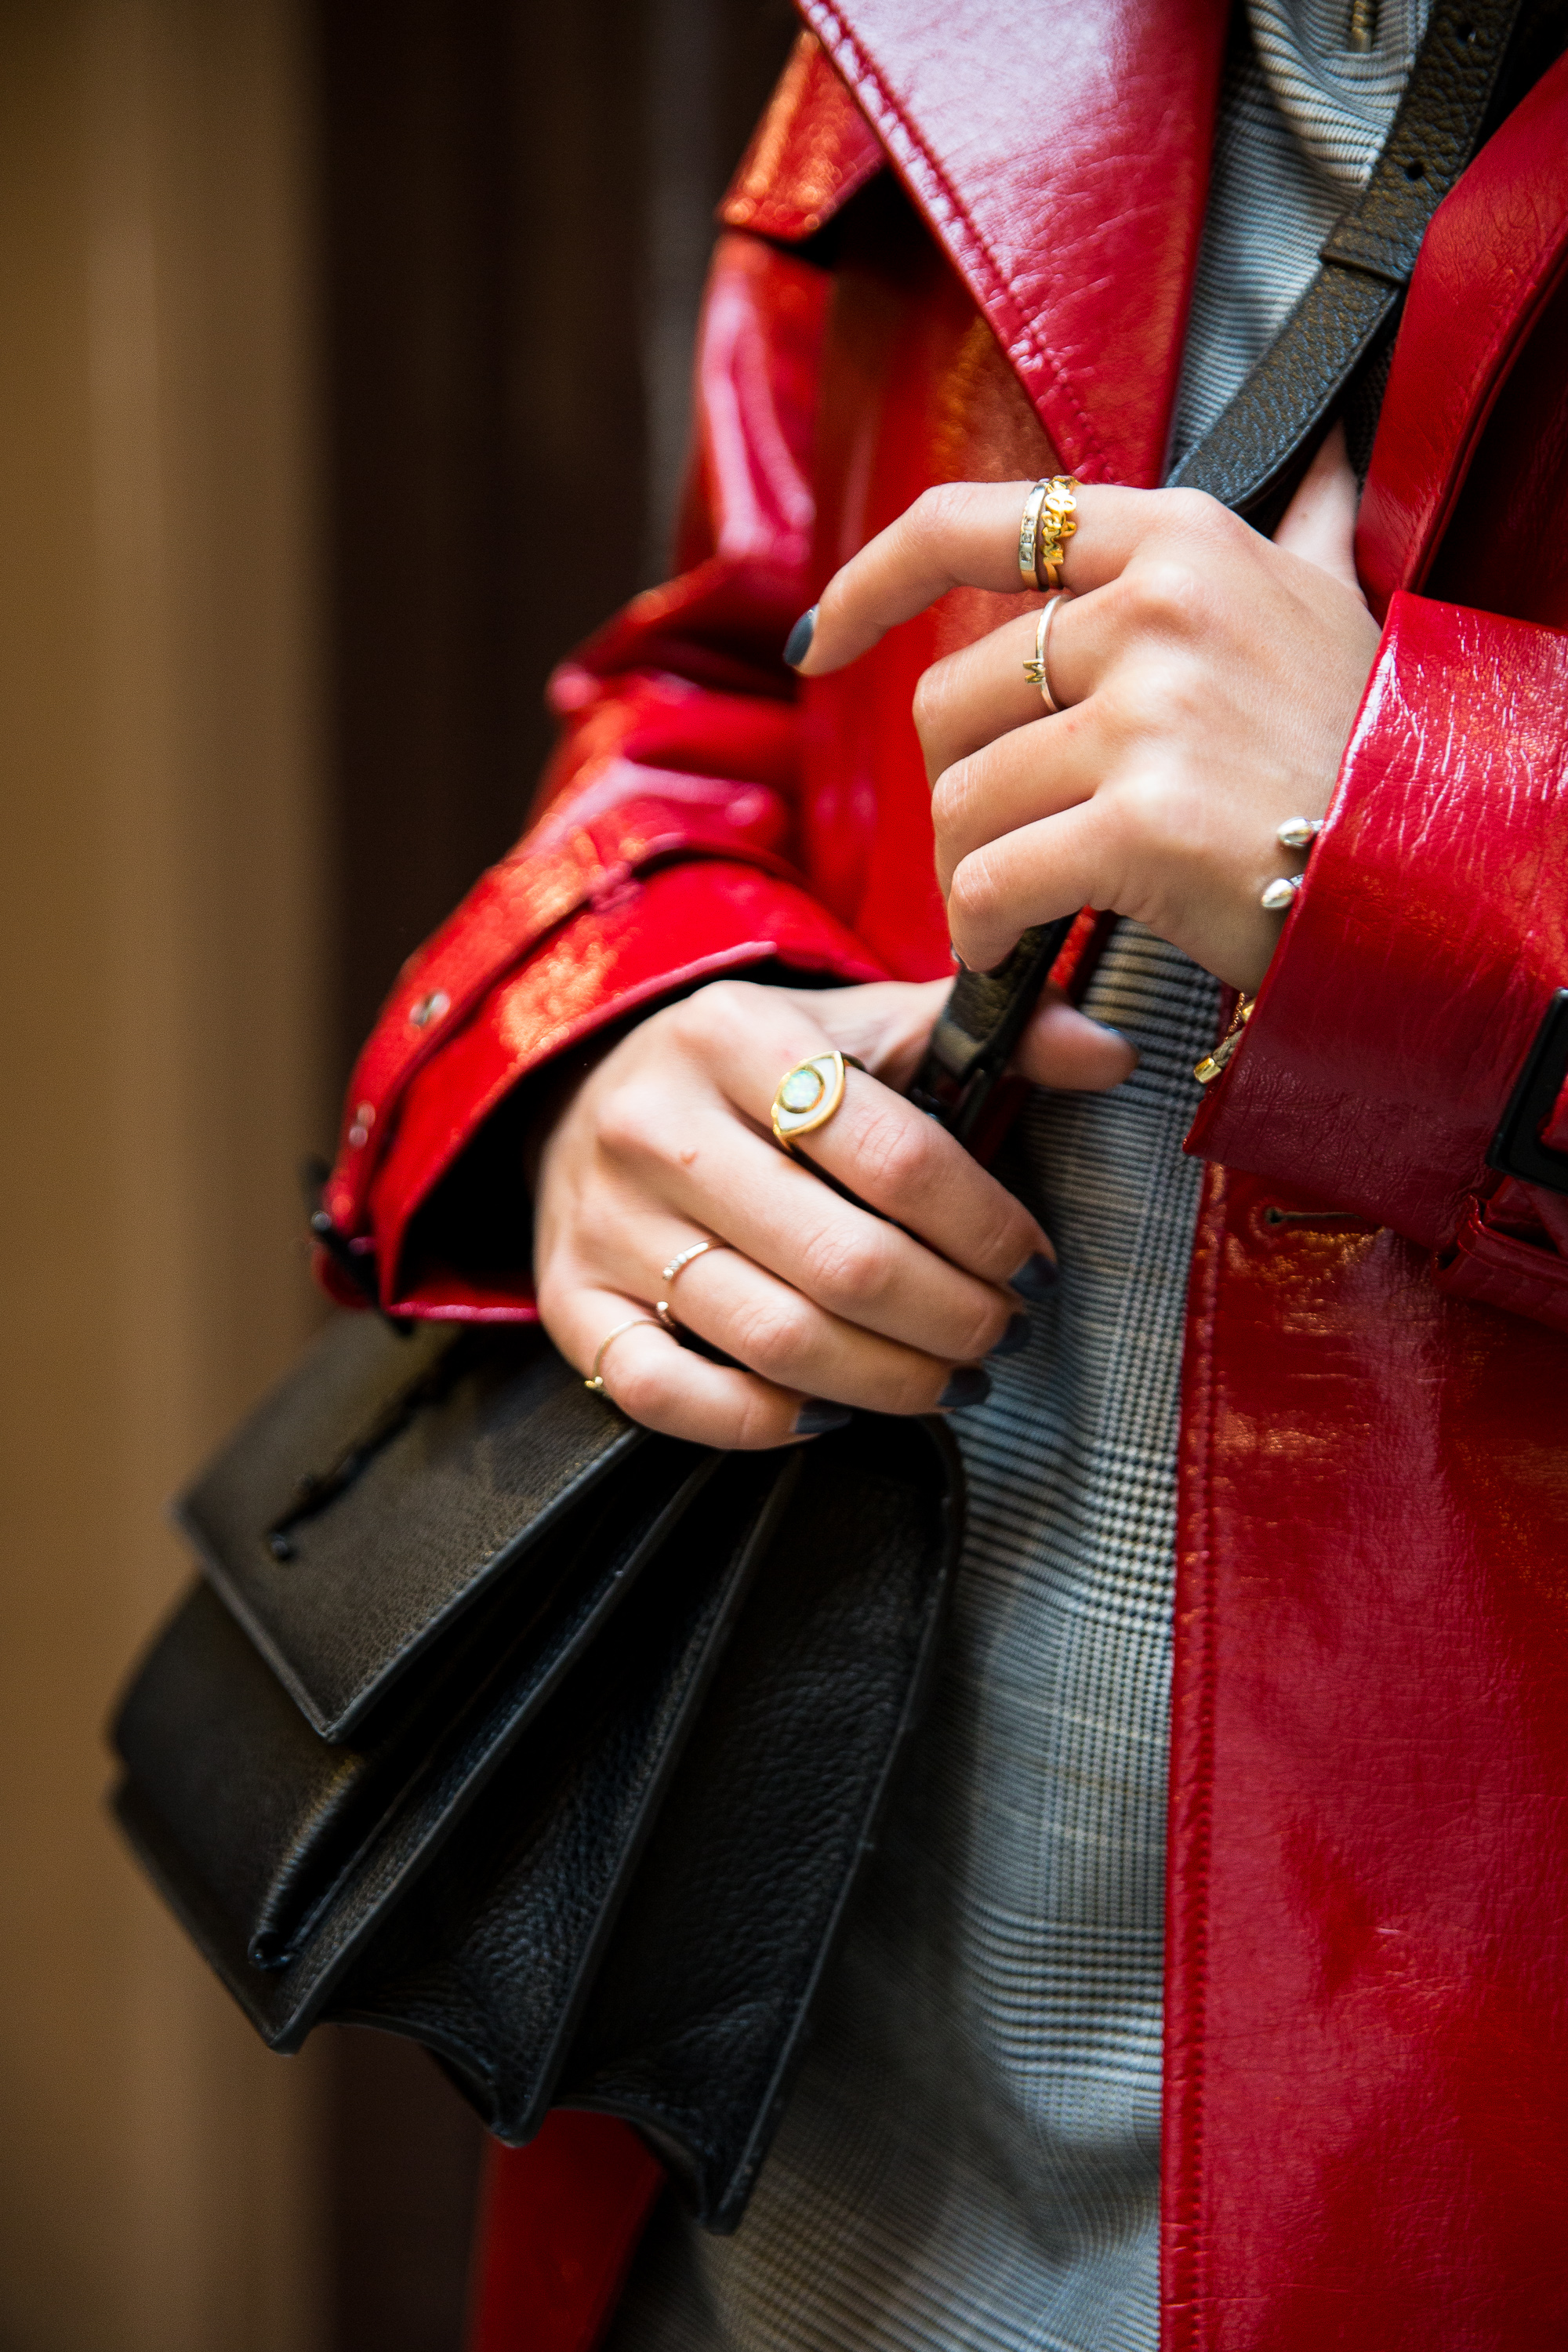 HOW TO WEAR STACKING RINGS MEGAN ELLABY